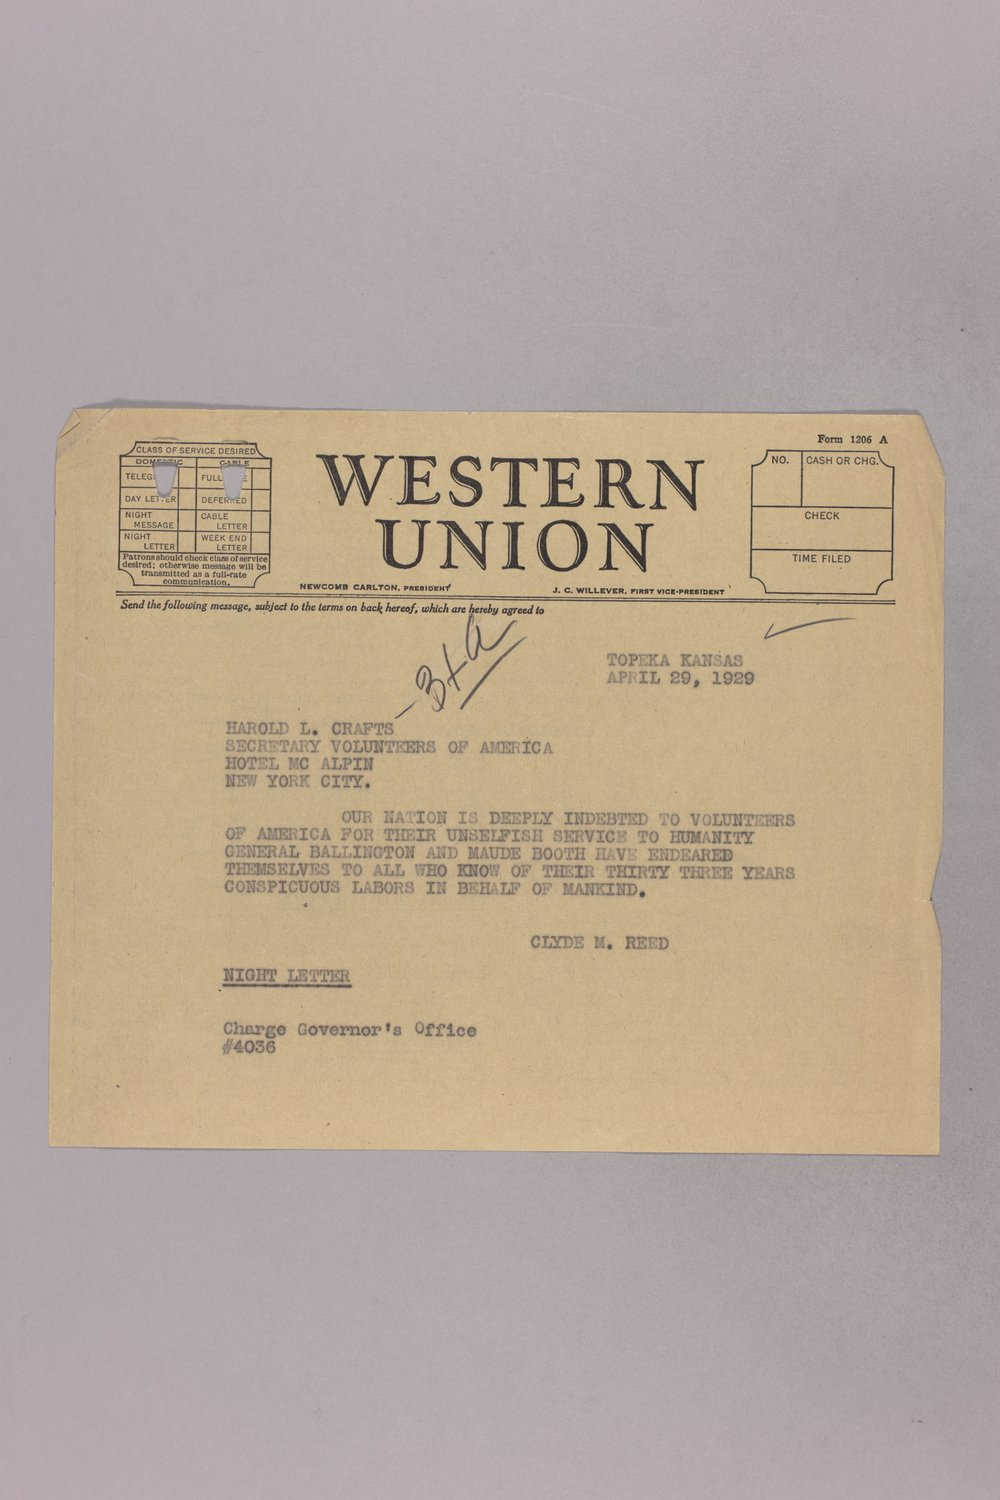 Governor Clyde M. Reed correspondence, honorary appointments - 10